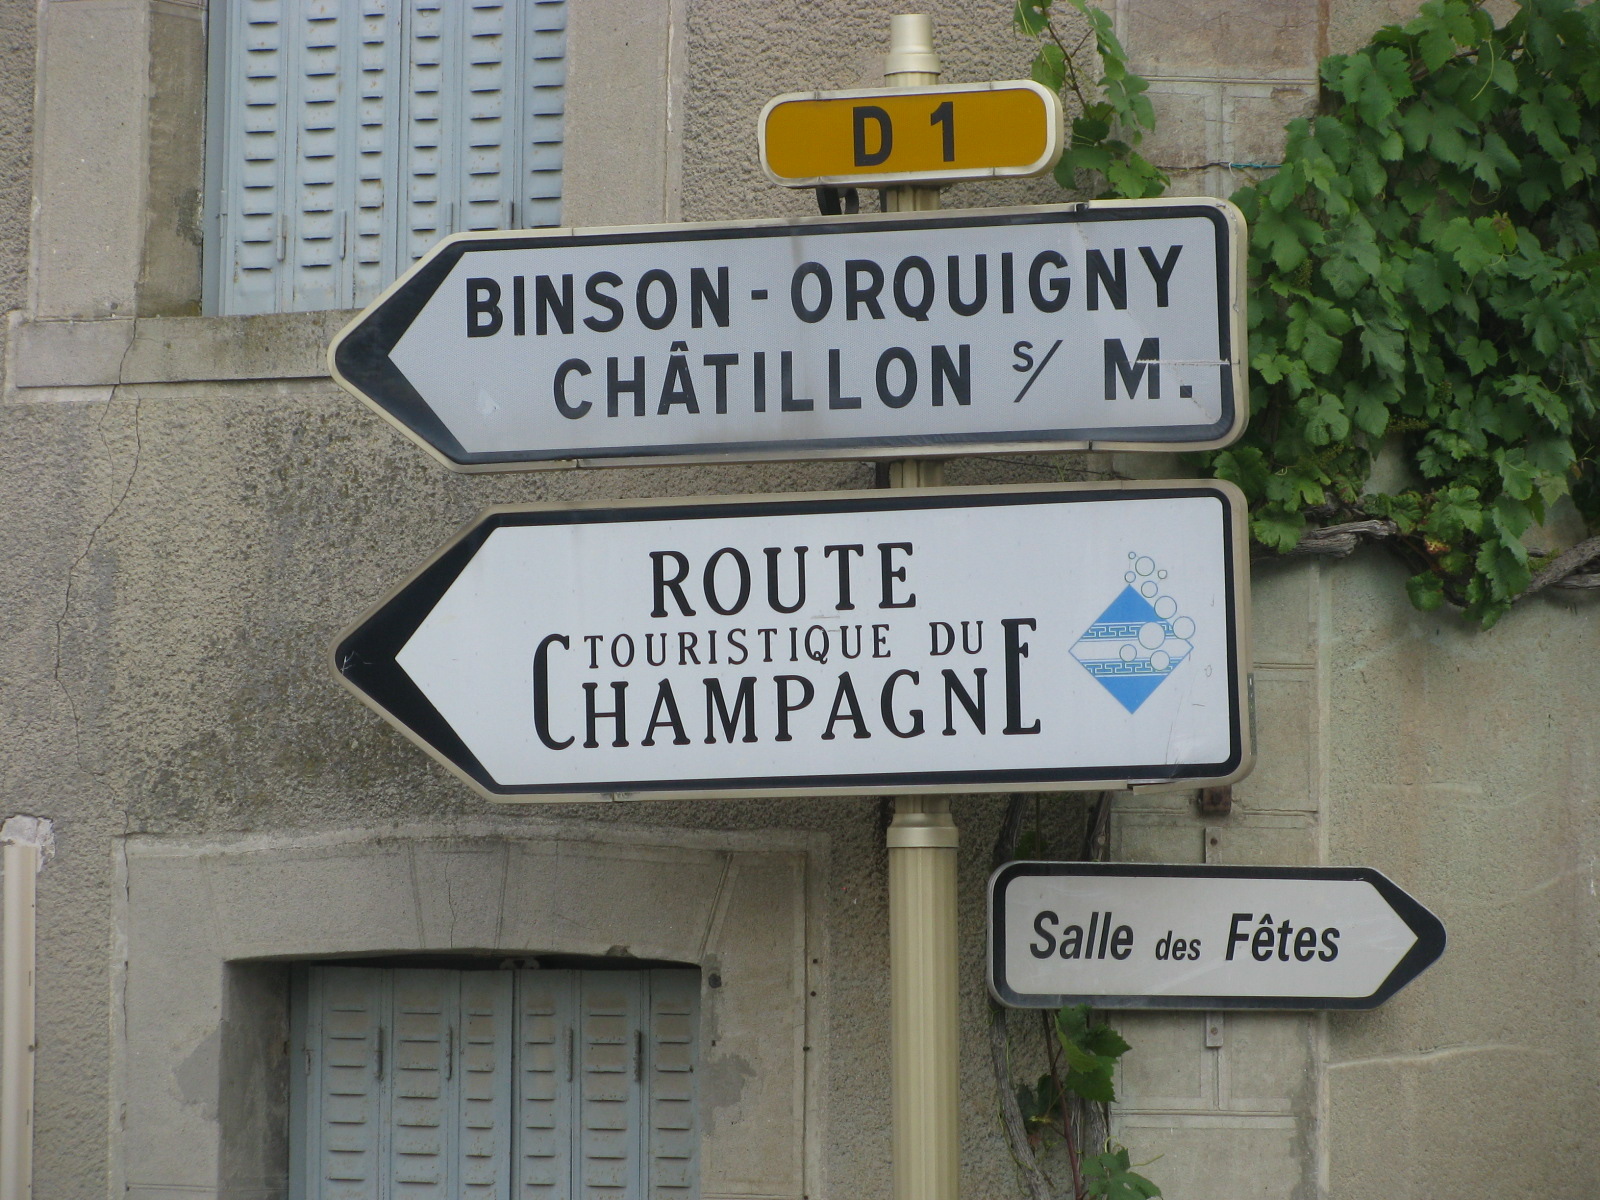 The Champagne tour